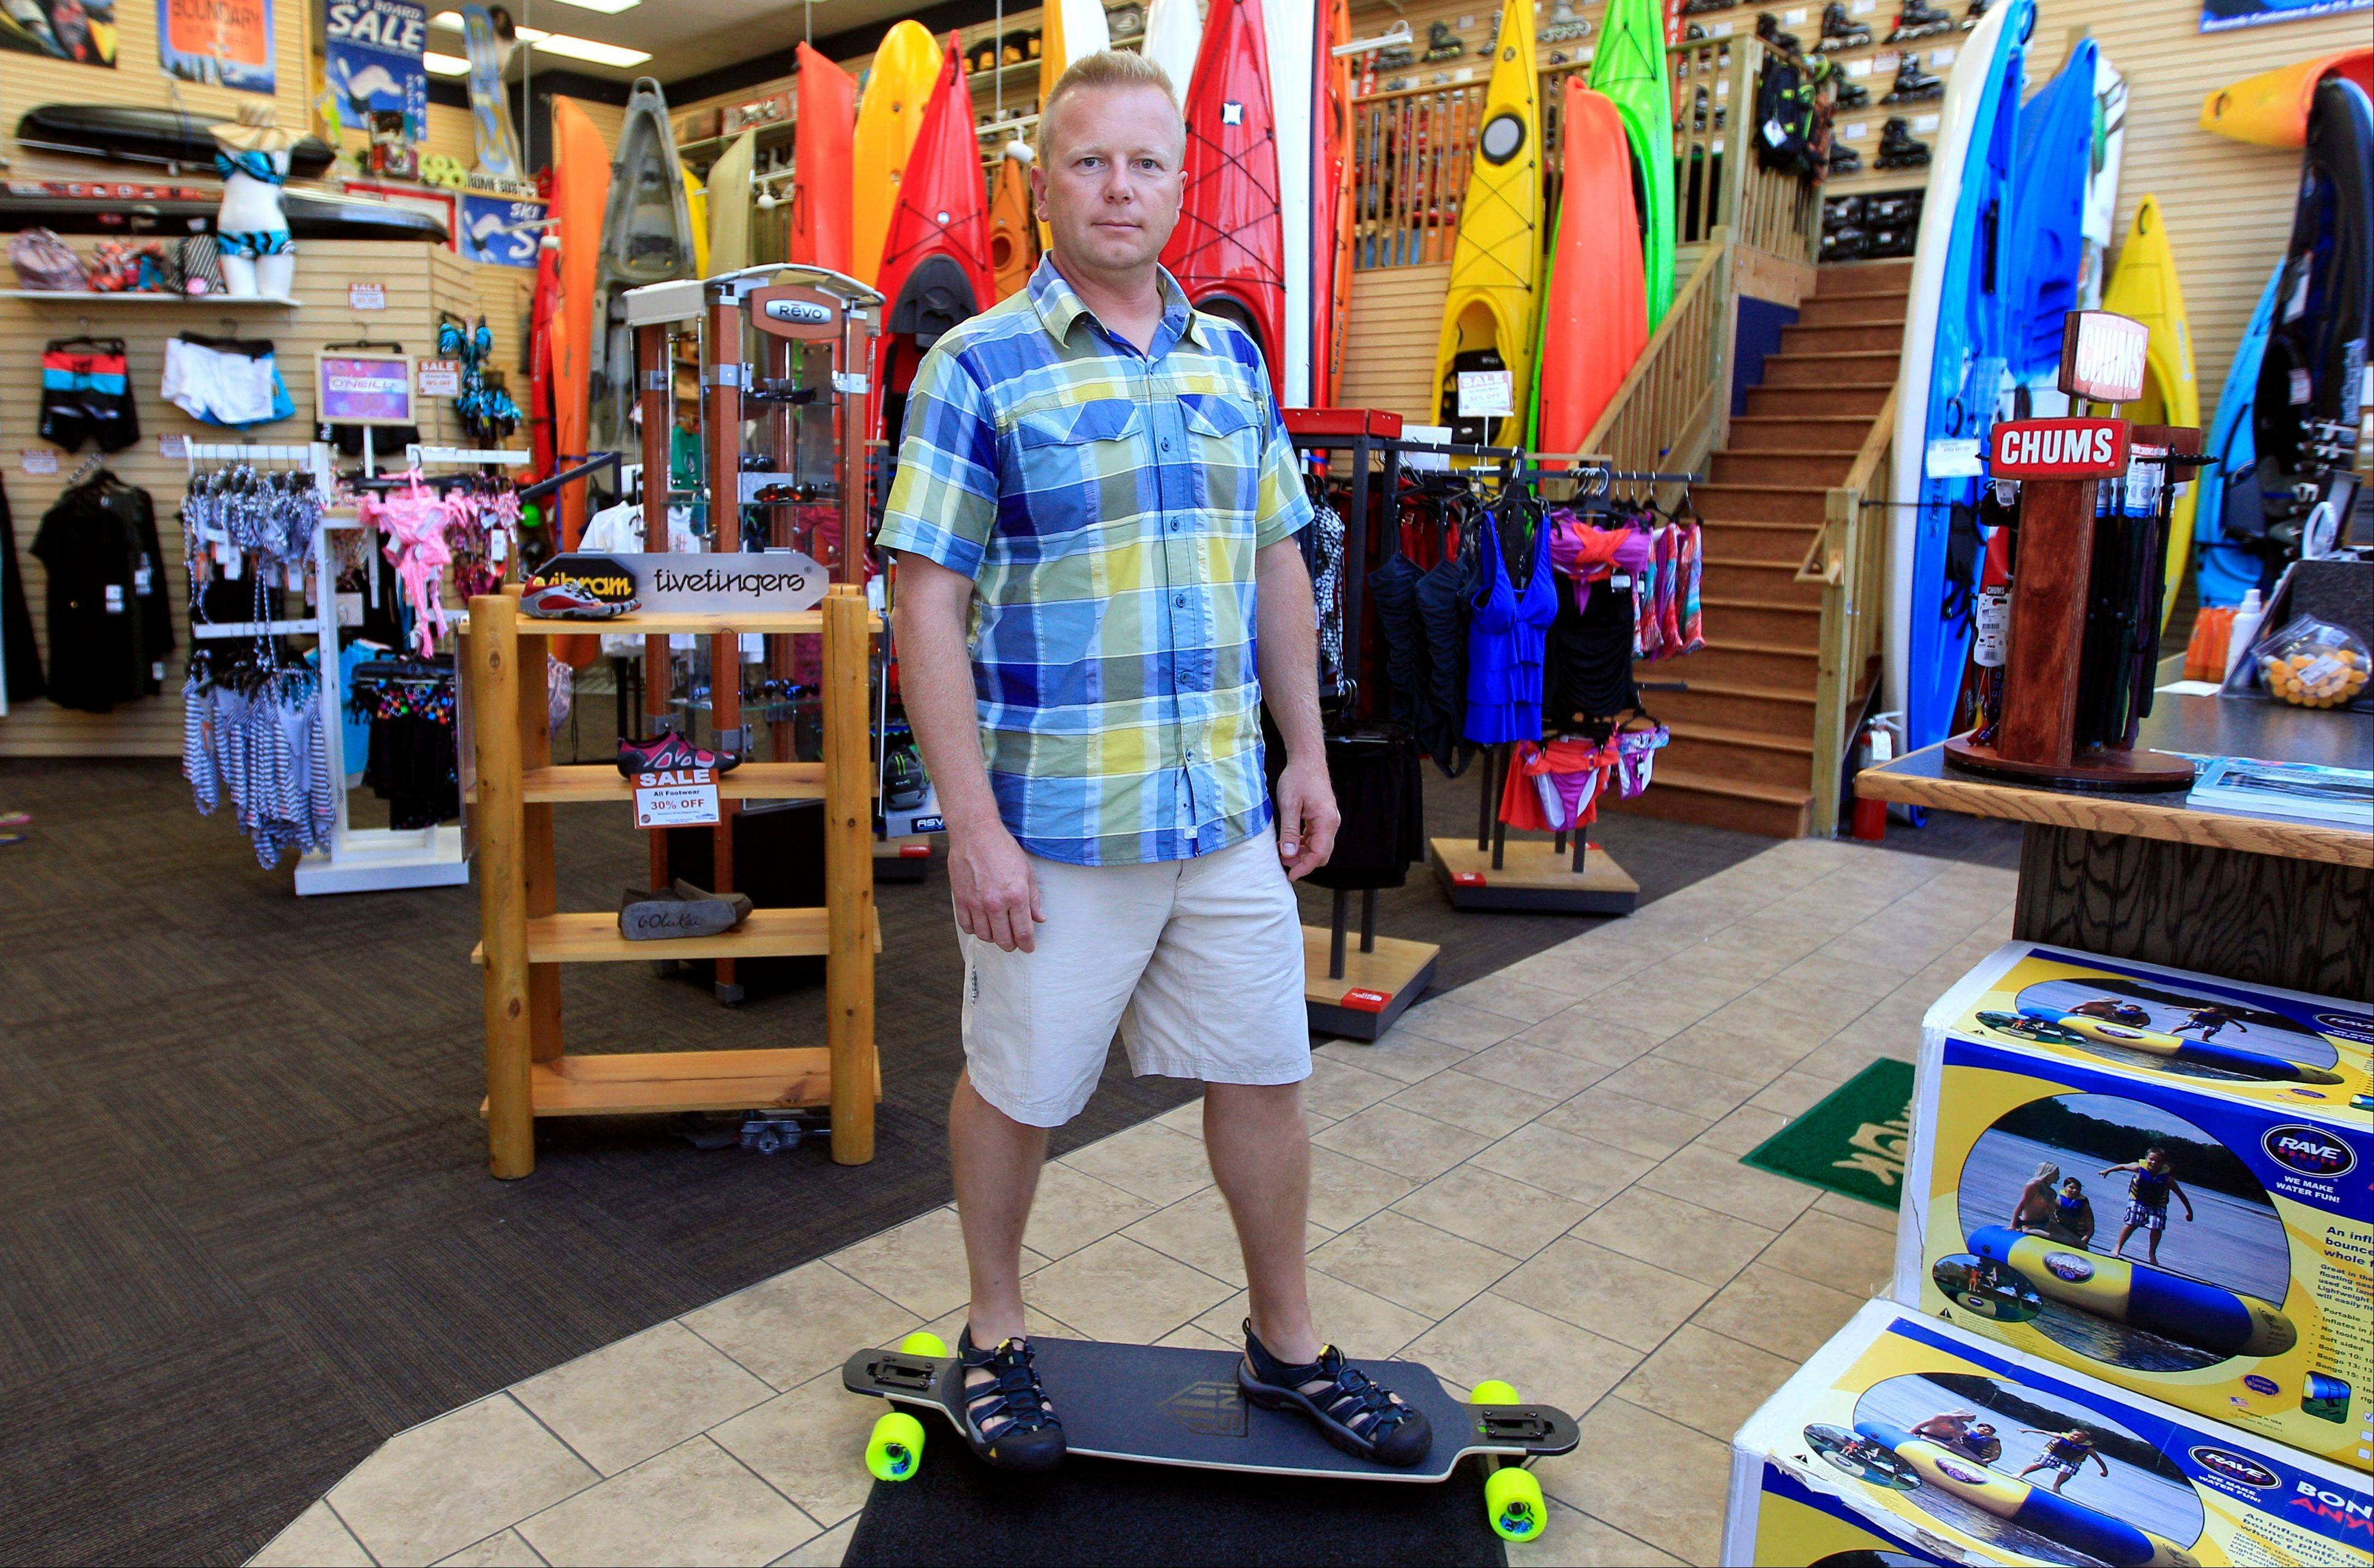 Andy Schepper, vice president of Summit Sports in Keego Harbor, Mich., says business is up 20 percent from last year. But sales of inline skates are down nearly 20 percent. Over the years, he's learned that very few people want to skate and bake in the sun.